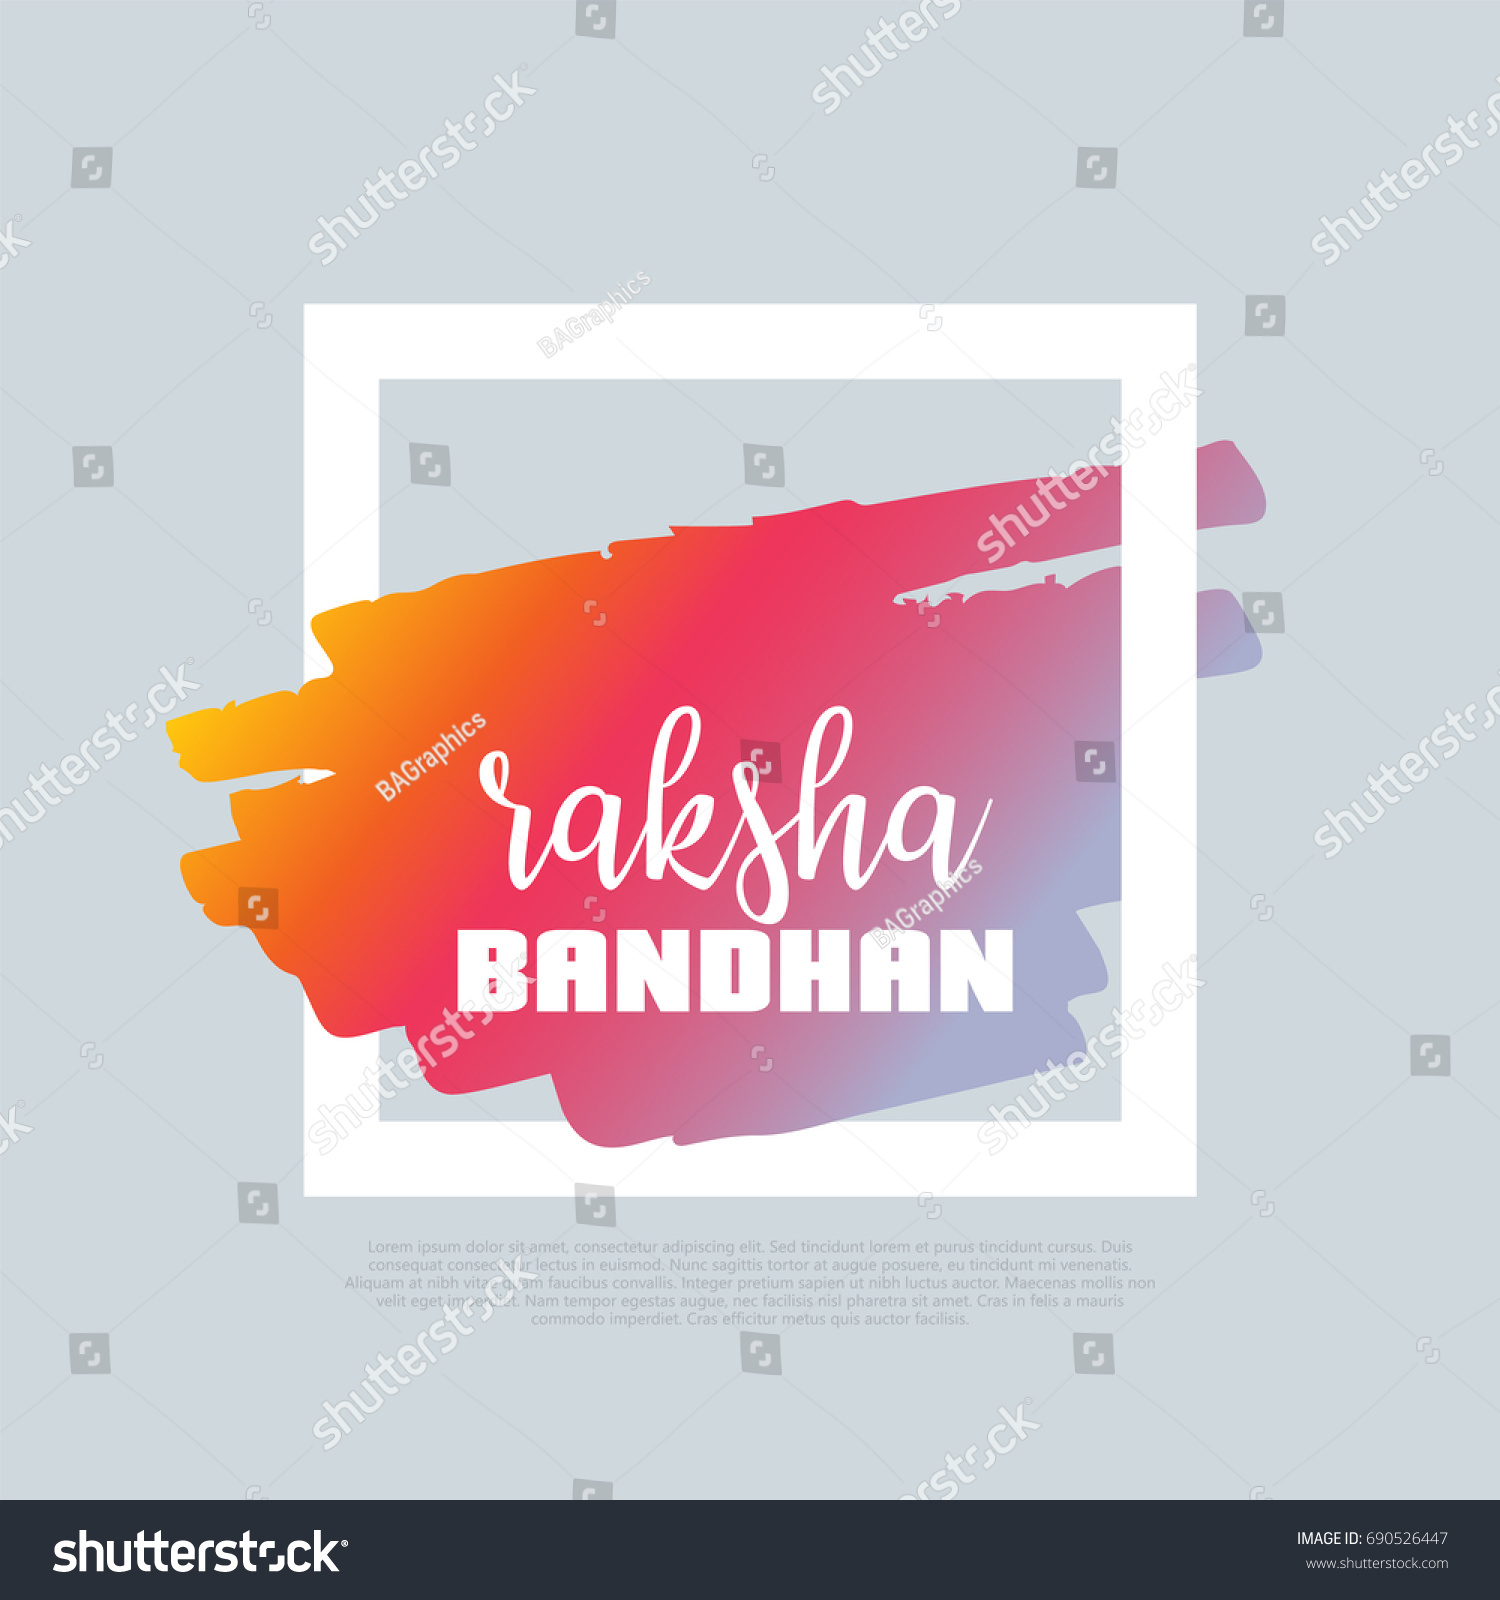 raksha bandhan vector clipart design template stock vector (royalty